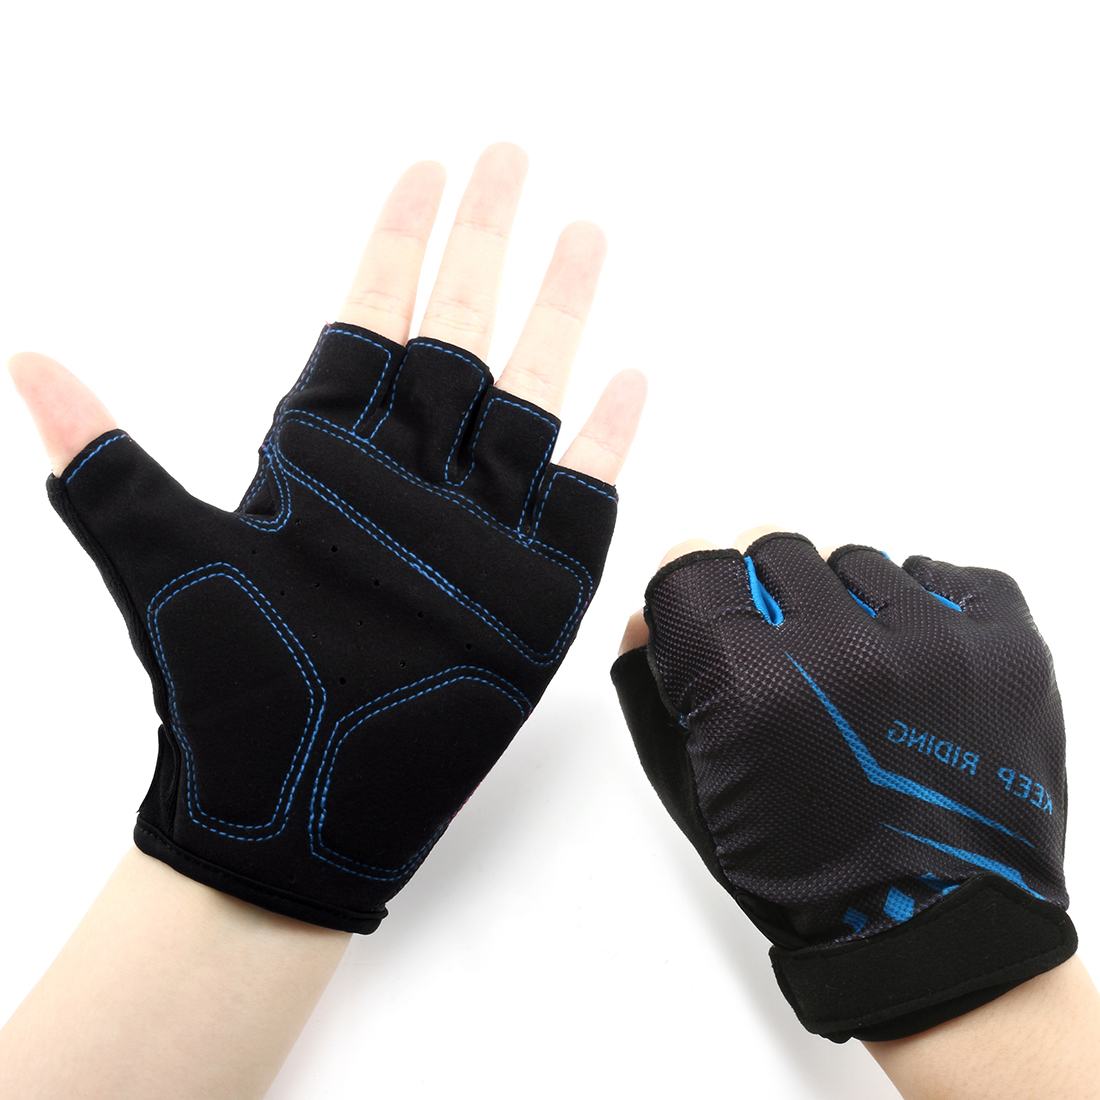 Outdoor Elasticized Fabric Sports Exercise Half Finger Cycling Gloves Palm Support Pair (Blue XL)